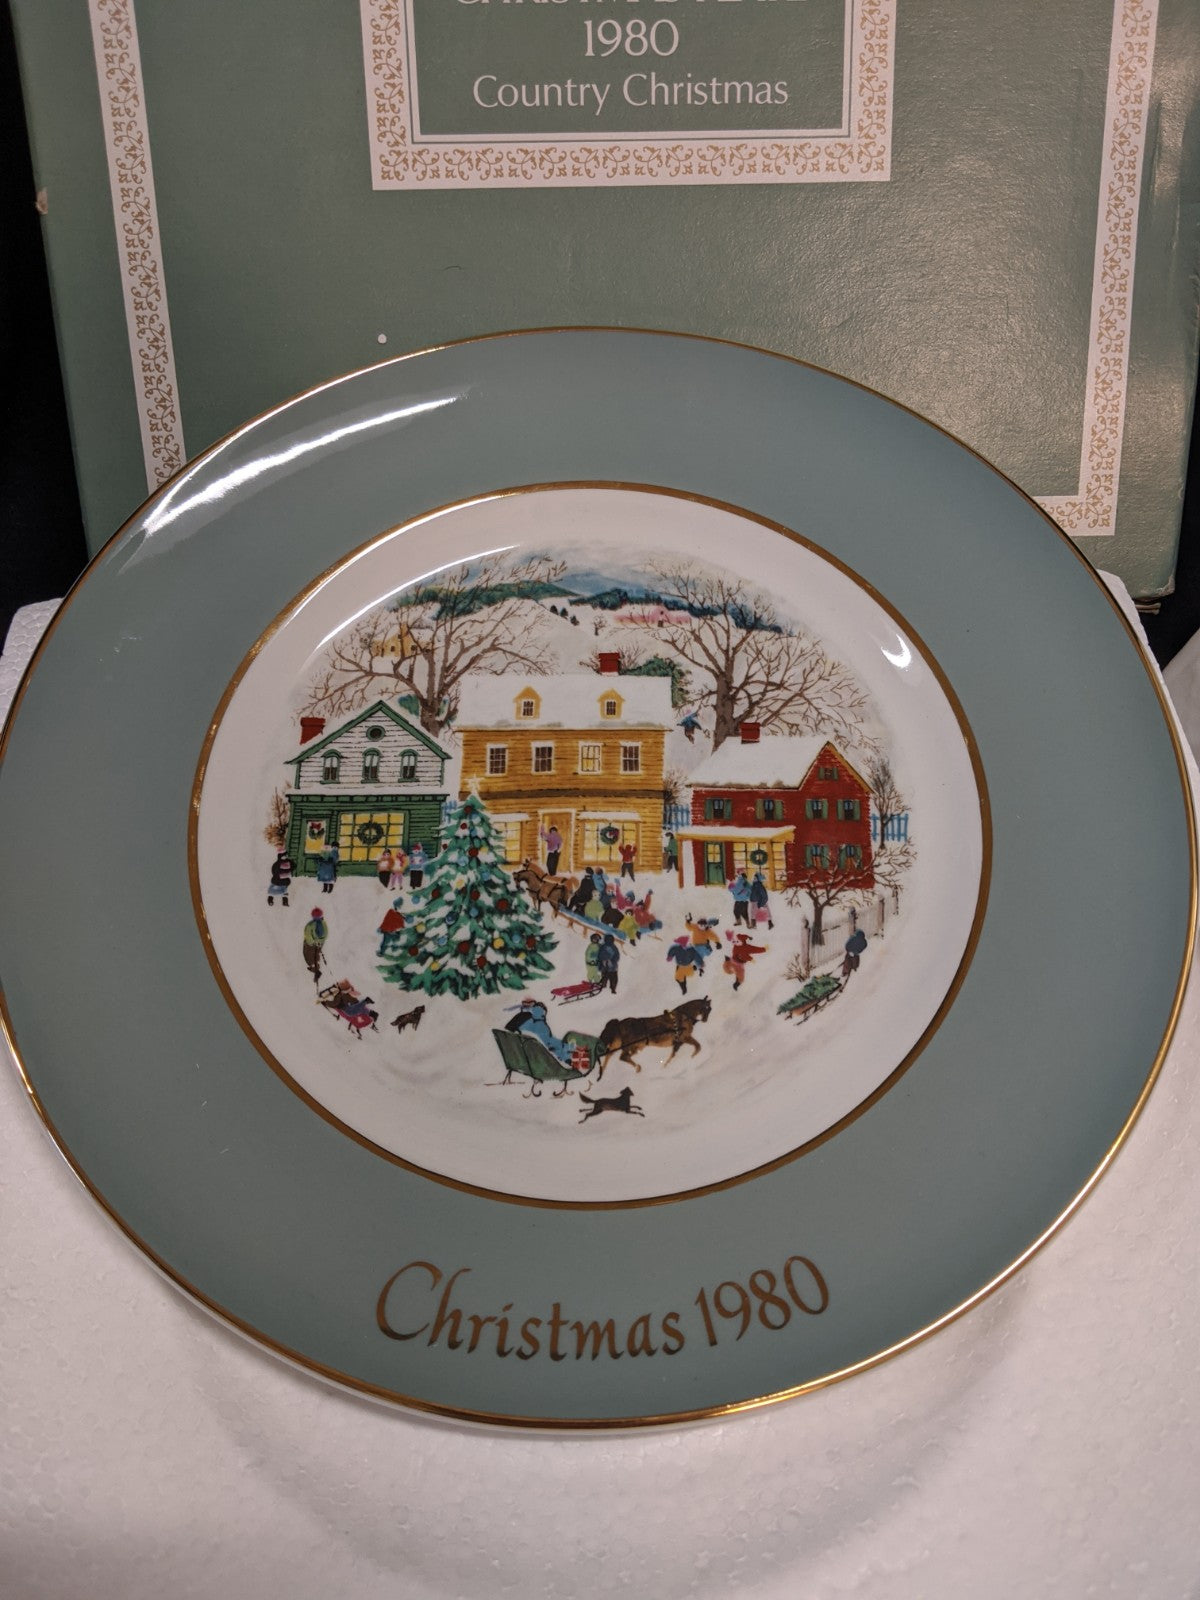 Vintage Avon Christmas Plate, Country Christmas 1980